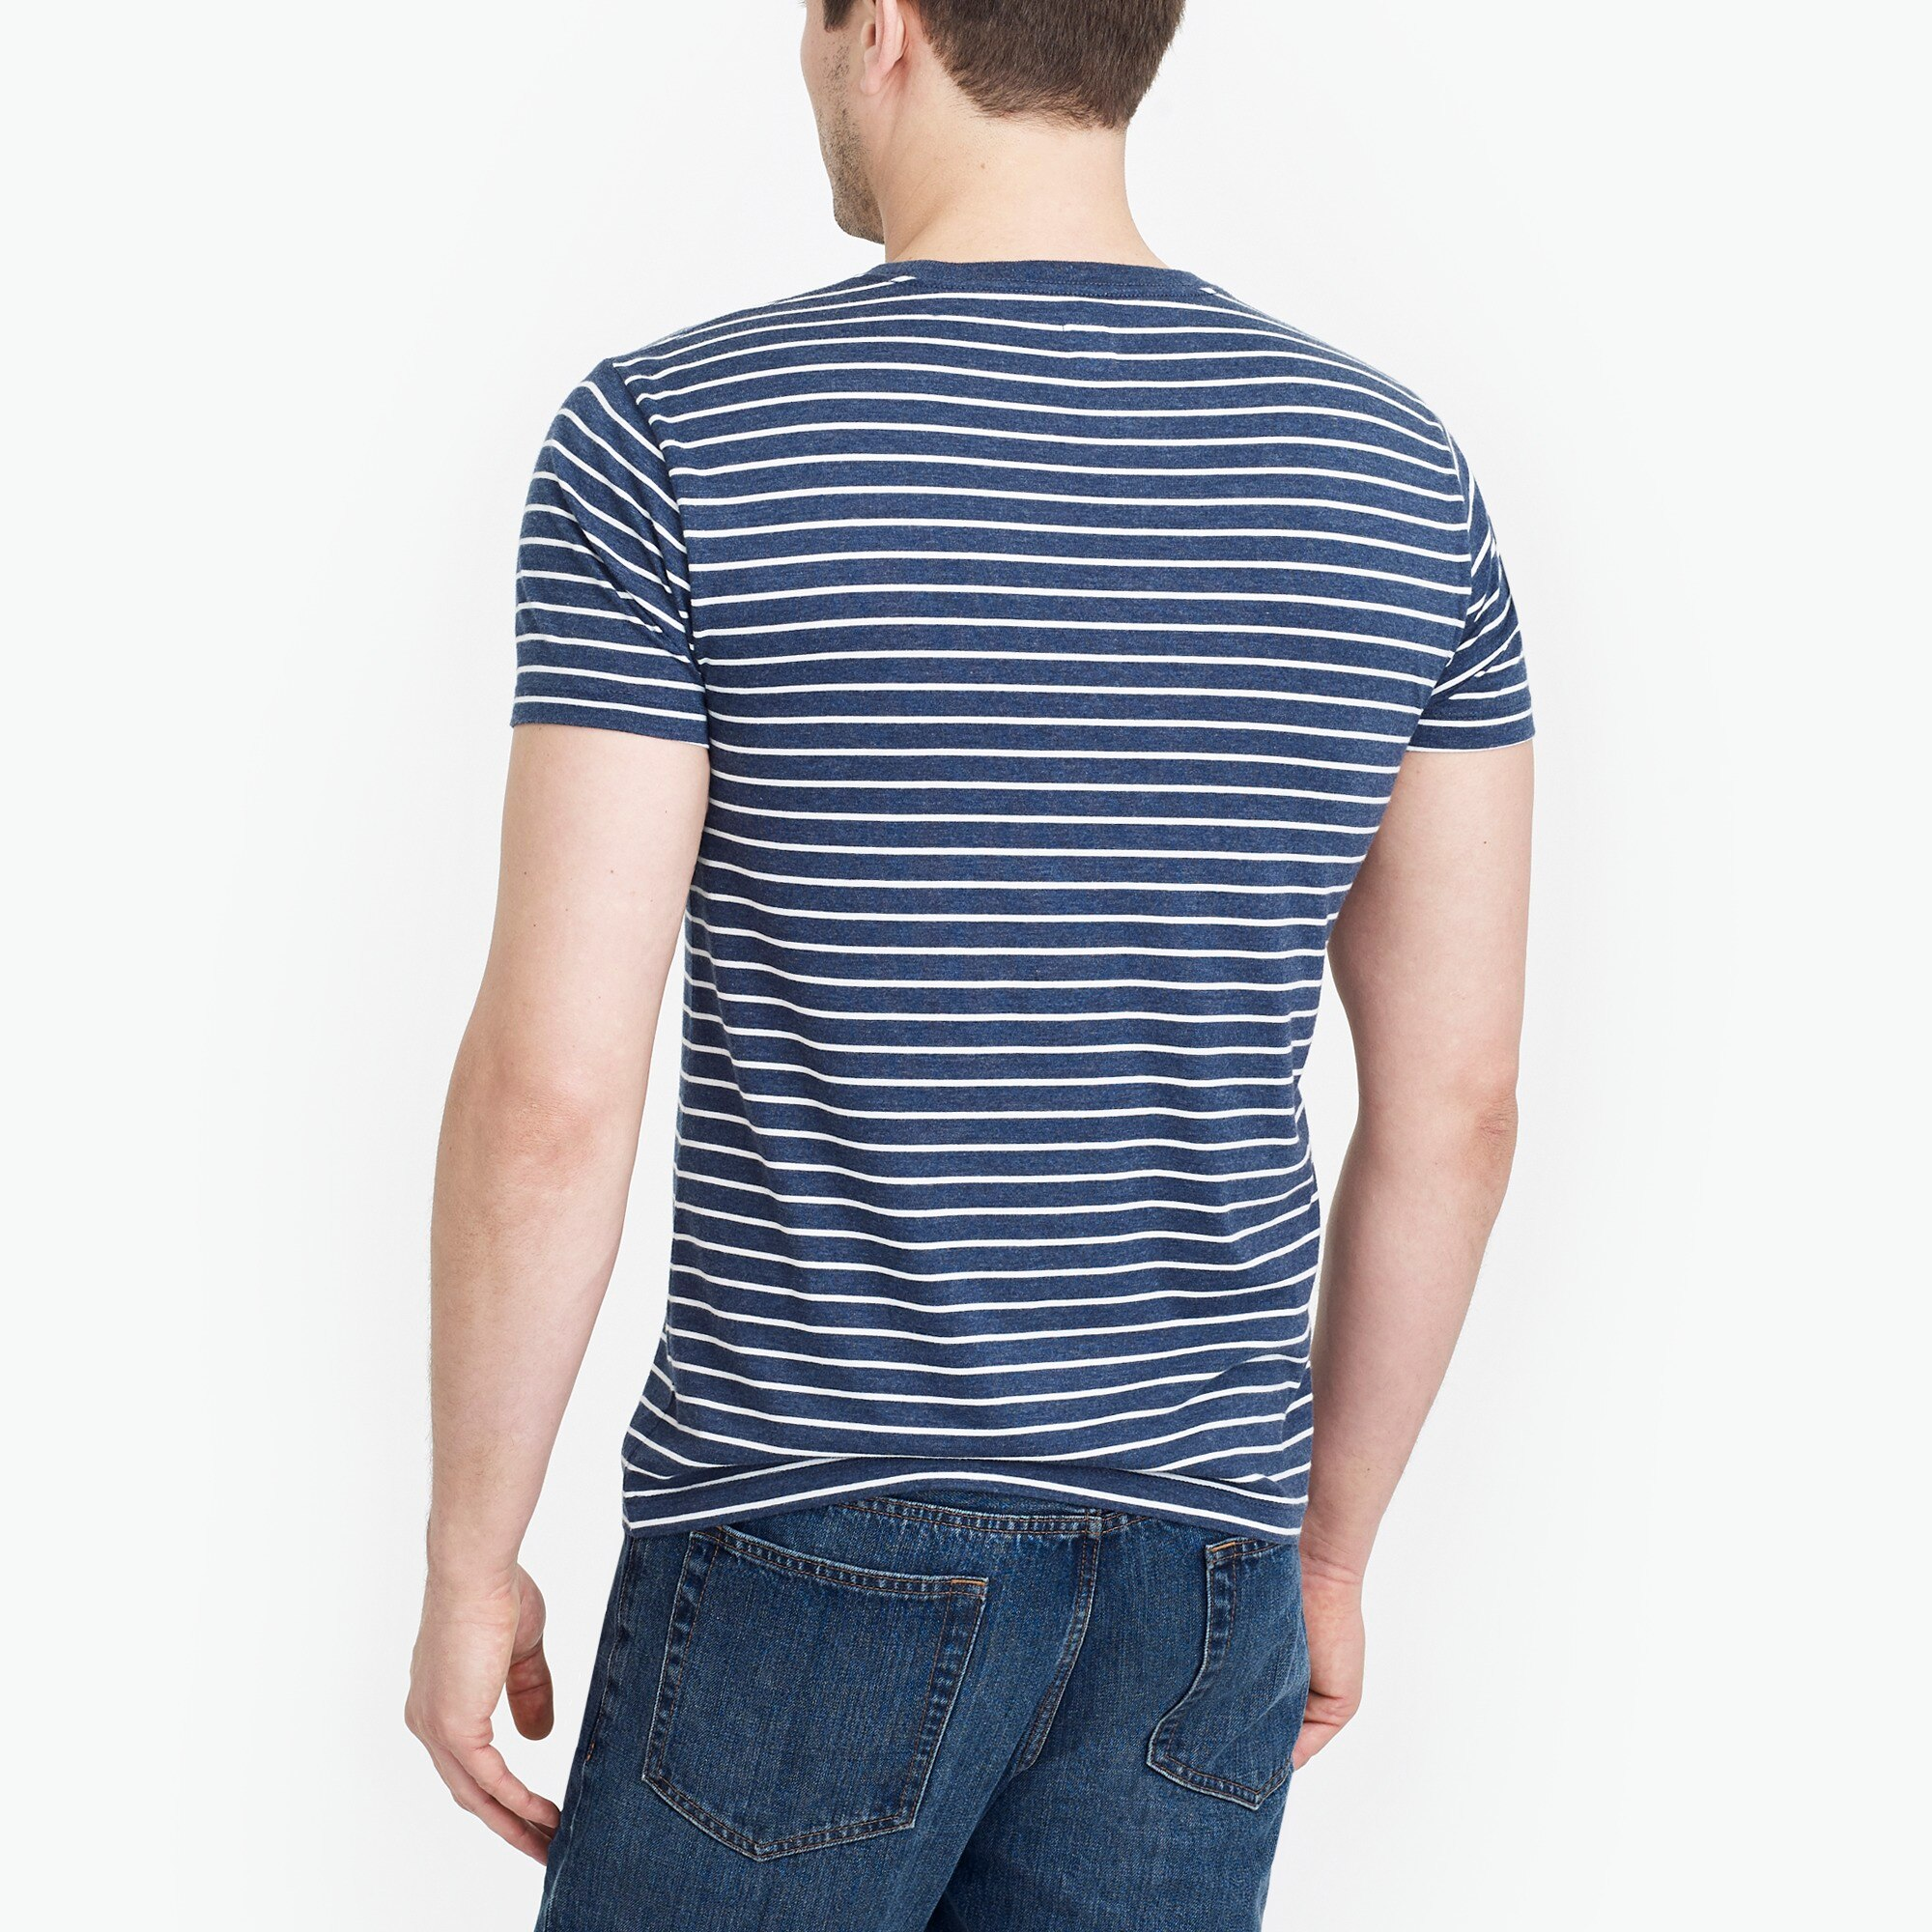 Image 3 for J.Crew Mercantile tall slim Broken-in striped pocket T-shirt